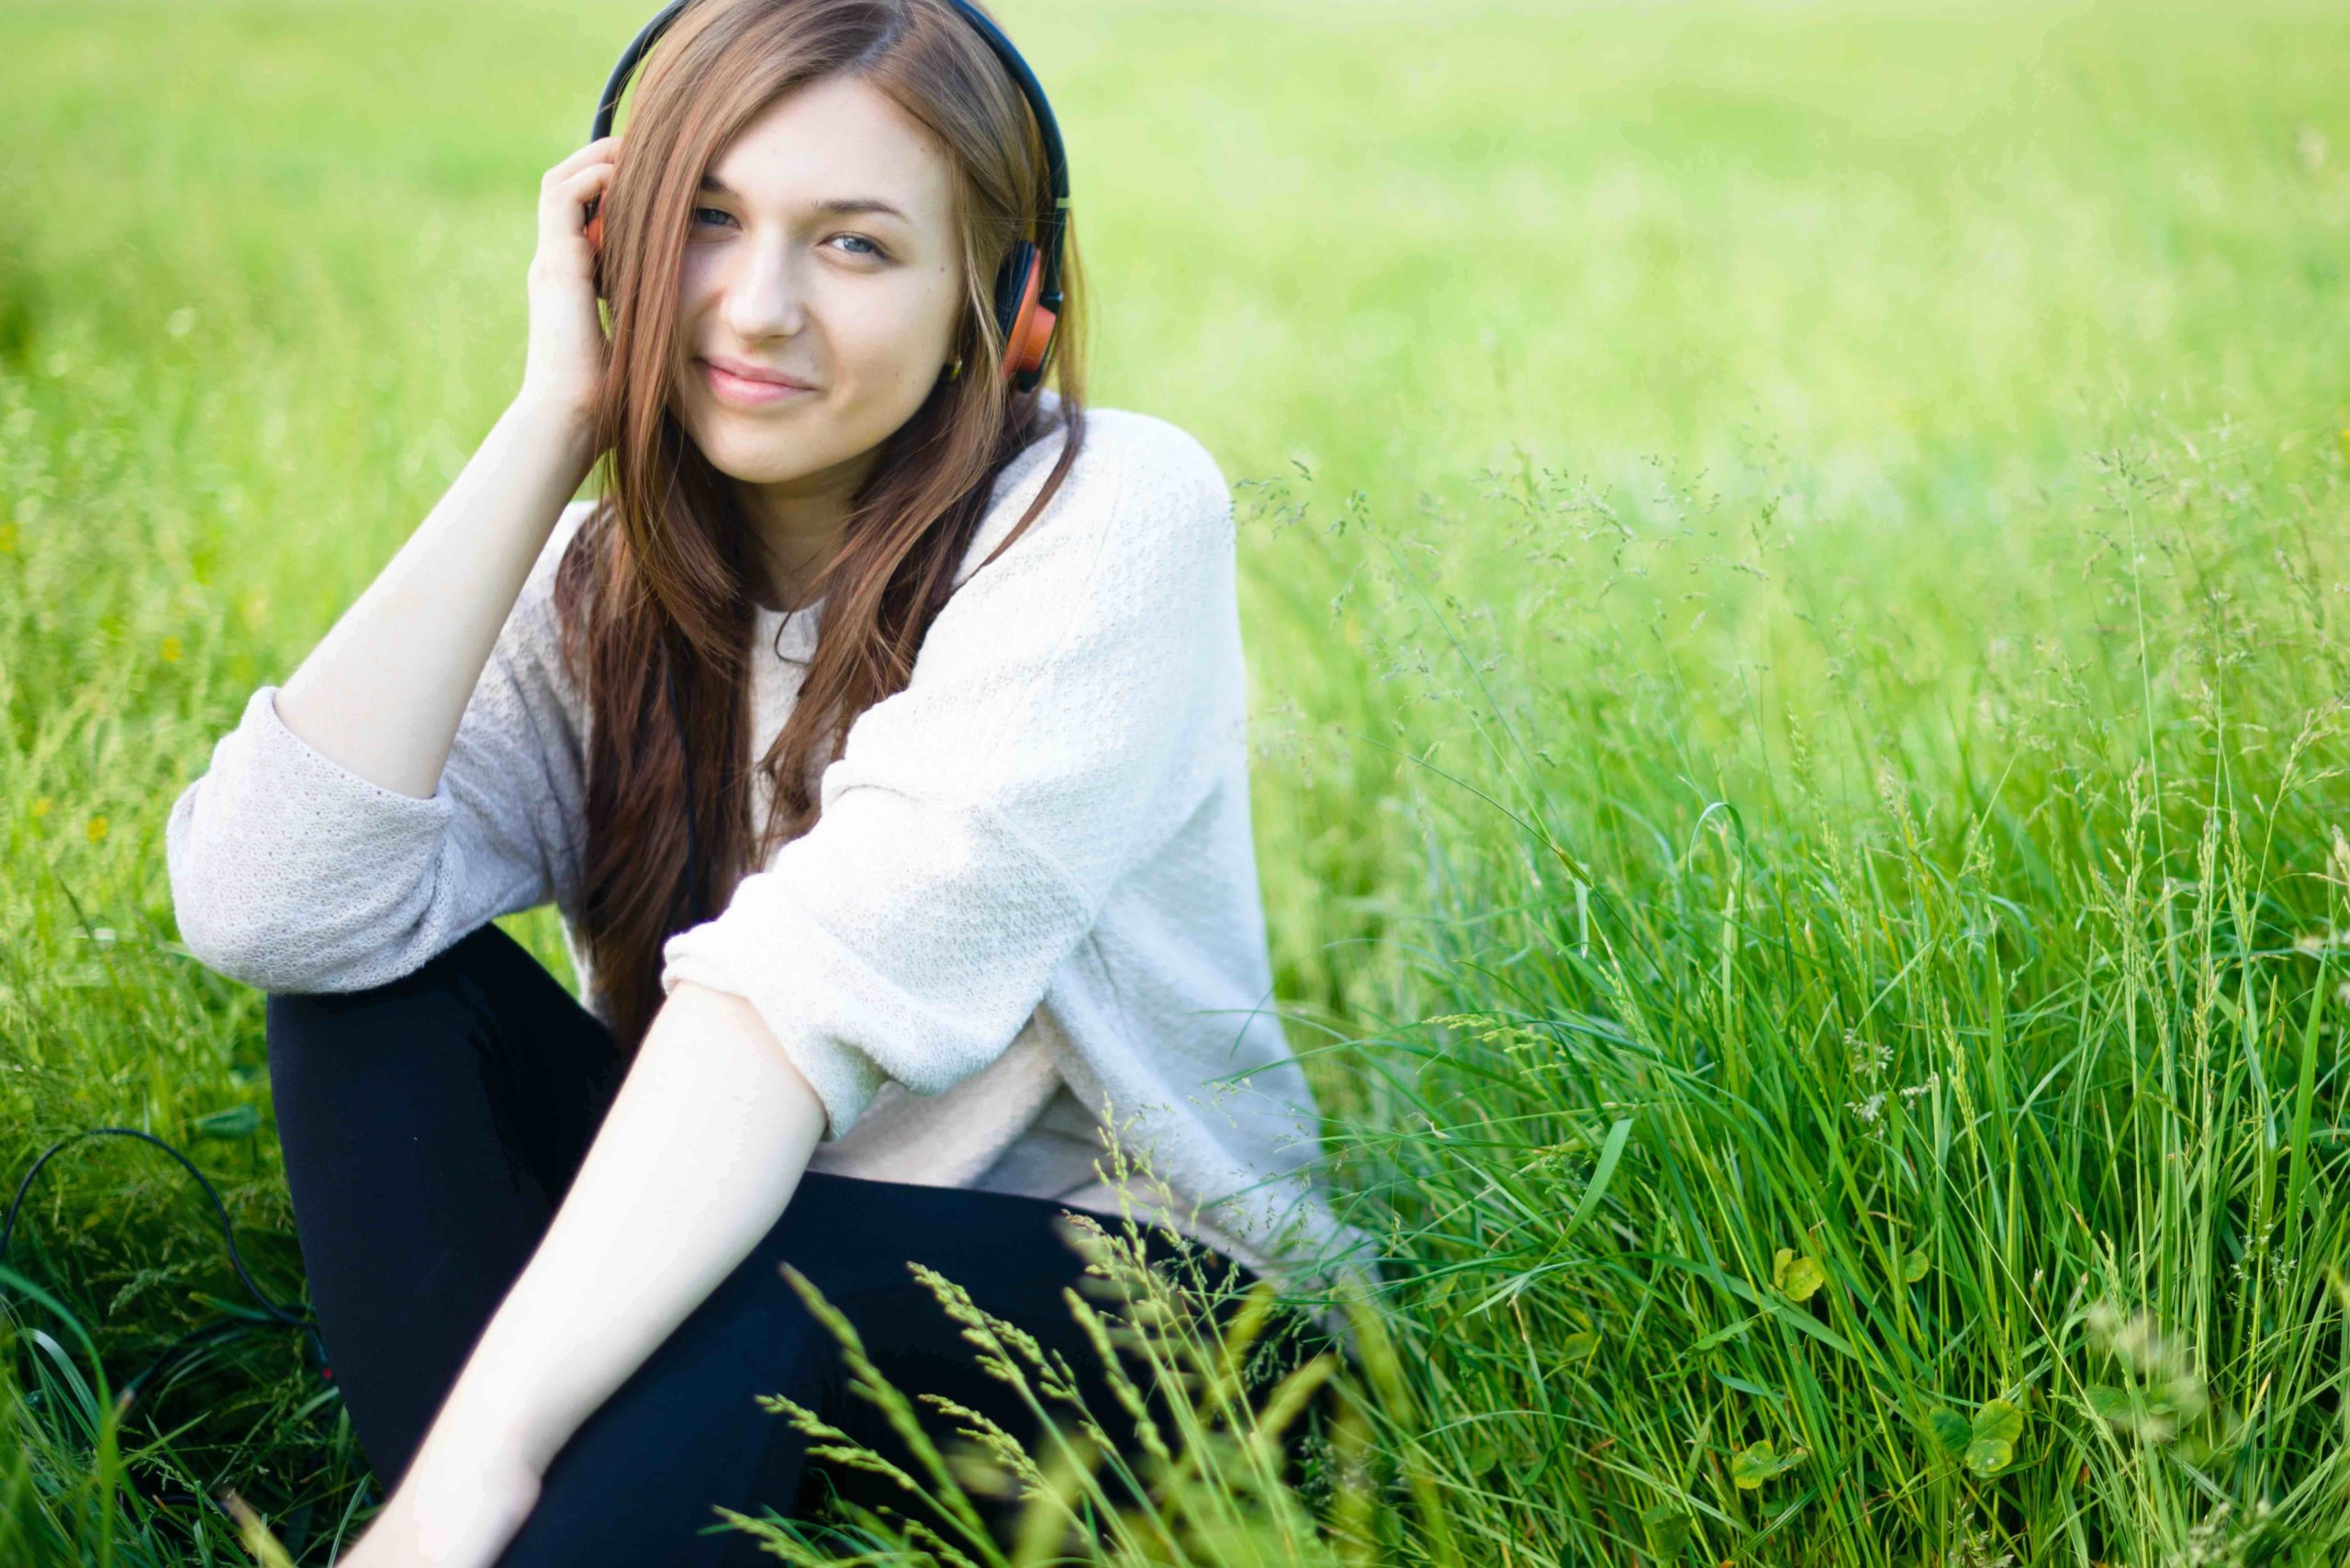 Instructions on how to transcribe audio description jobs